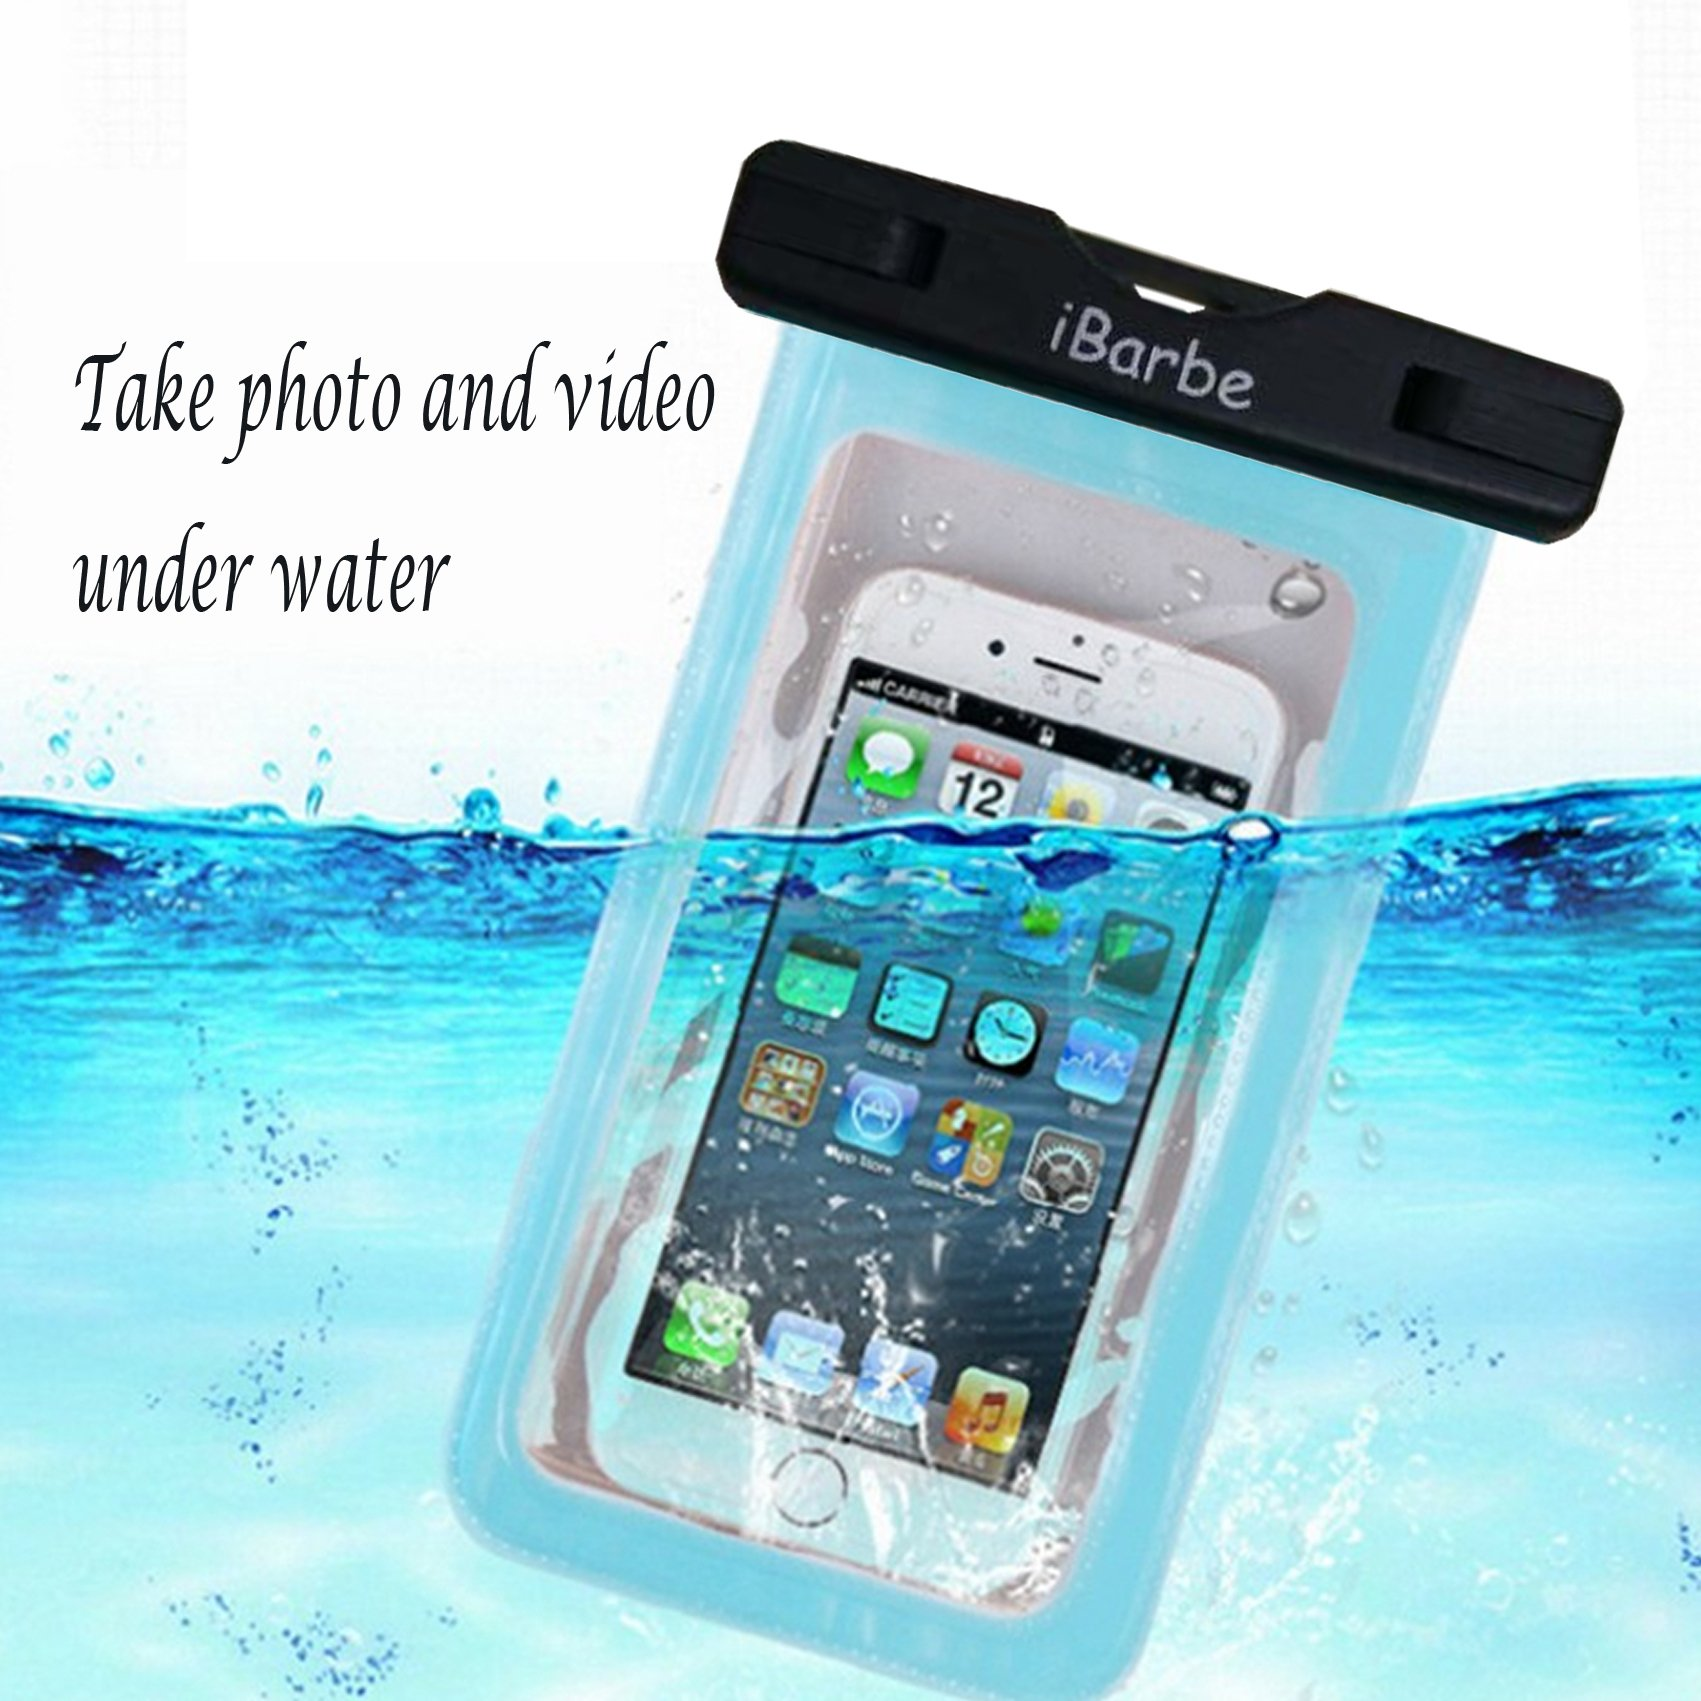 iBarbe 2 Pack Waterproof Case, Universal Cell Phone Plasic TPU Dry Bag for iPhone 7 7 plus 6S 6/6S Plus 5/S/SE 5C samsung galaxy Note 5 s8 s8 plus S 8 S7 S6 Edge s5 etc.to 5.7 inch,Tear+Blue by iBarbe (Image #4)